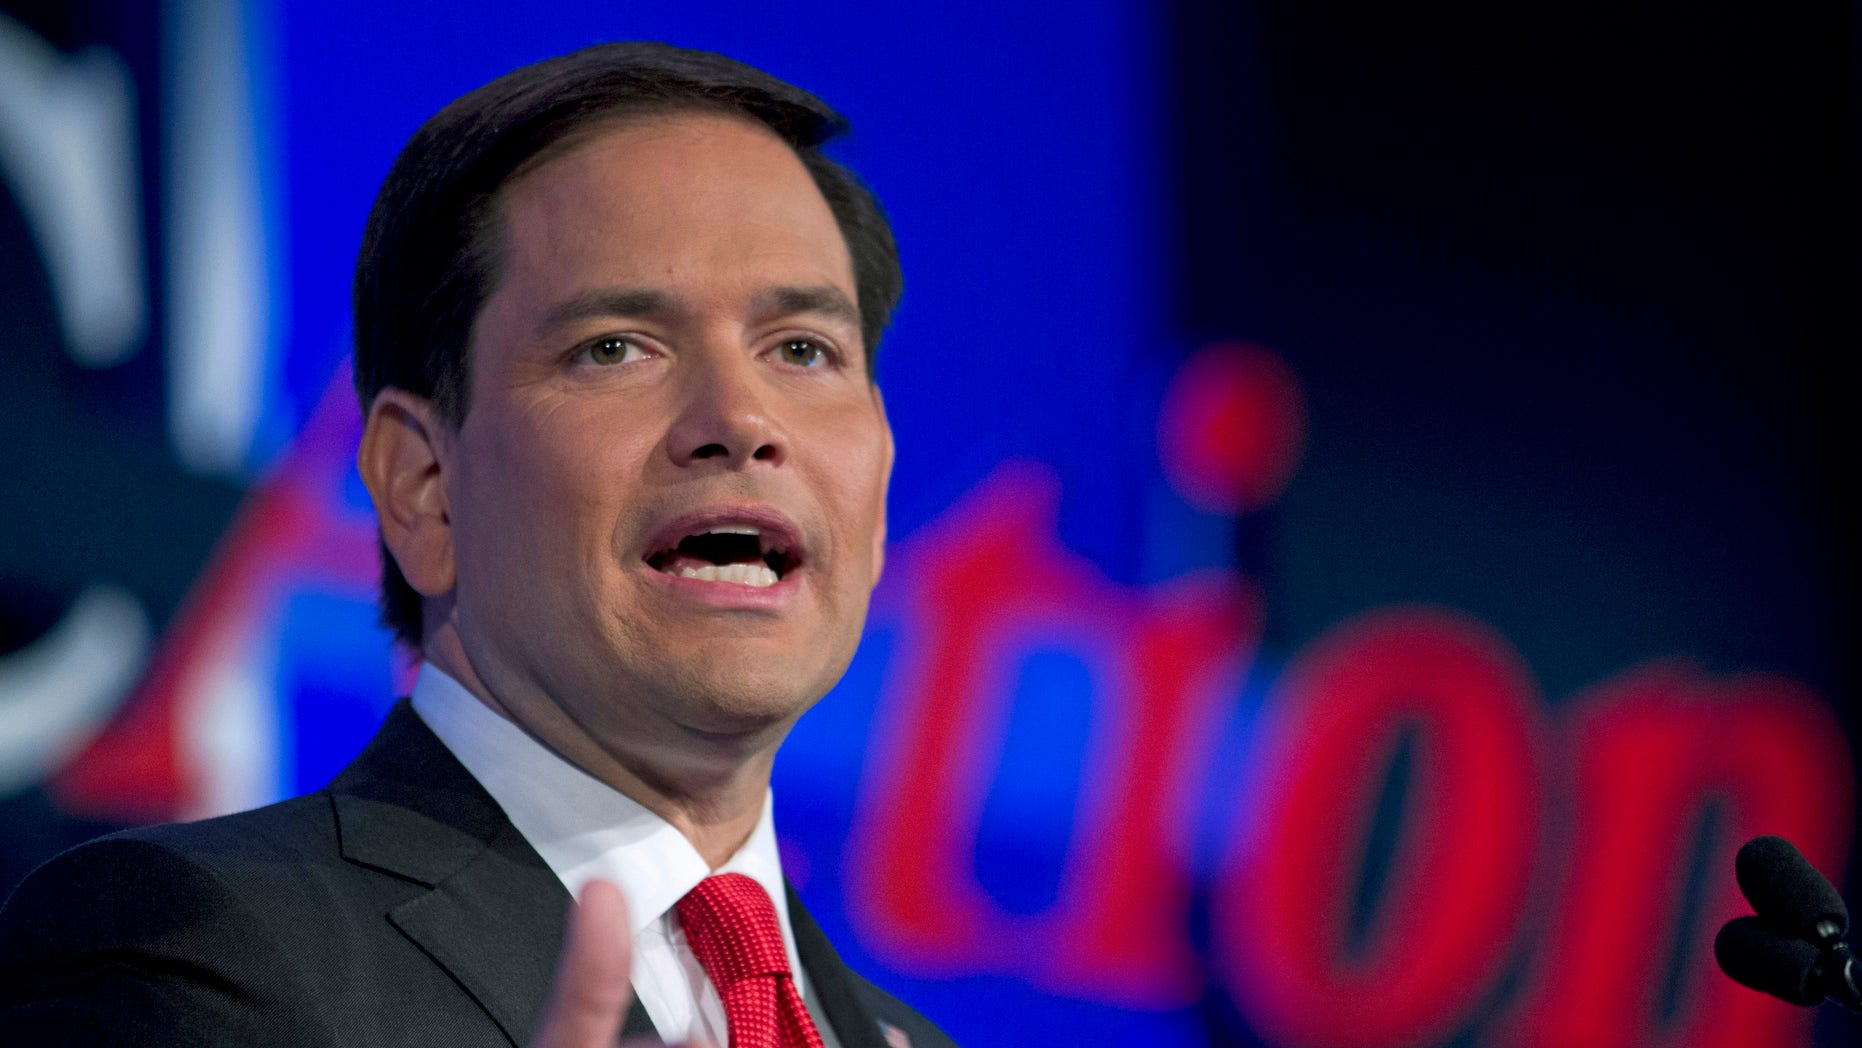 Former Republican presidential candidate Sen. Marco Rubio, R-Fla. on Sept. 25, 2015, in Washington, D.C.